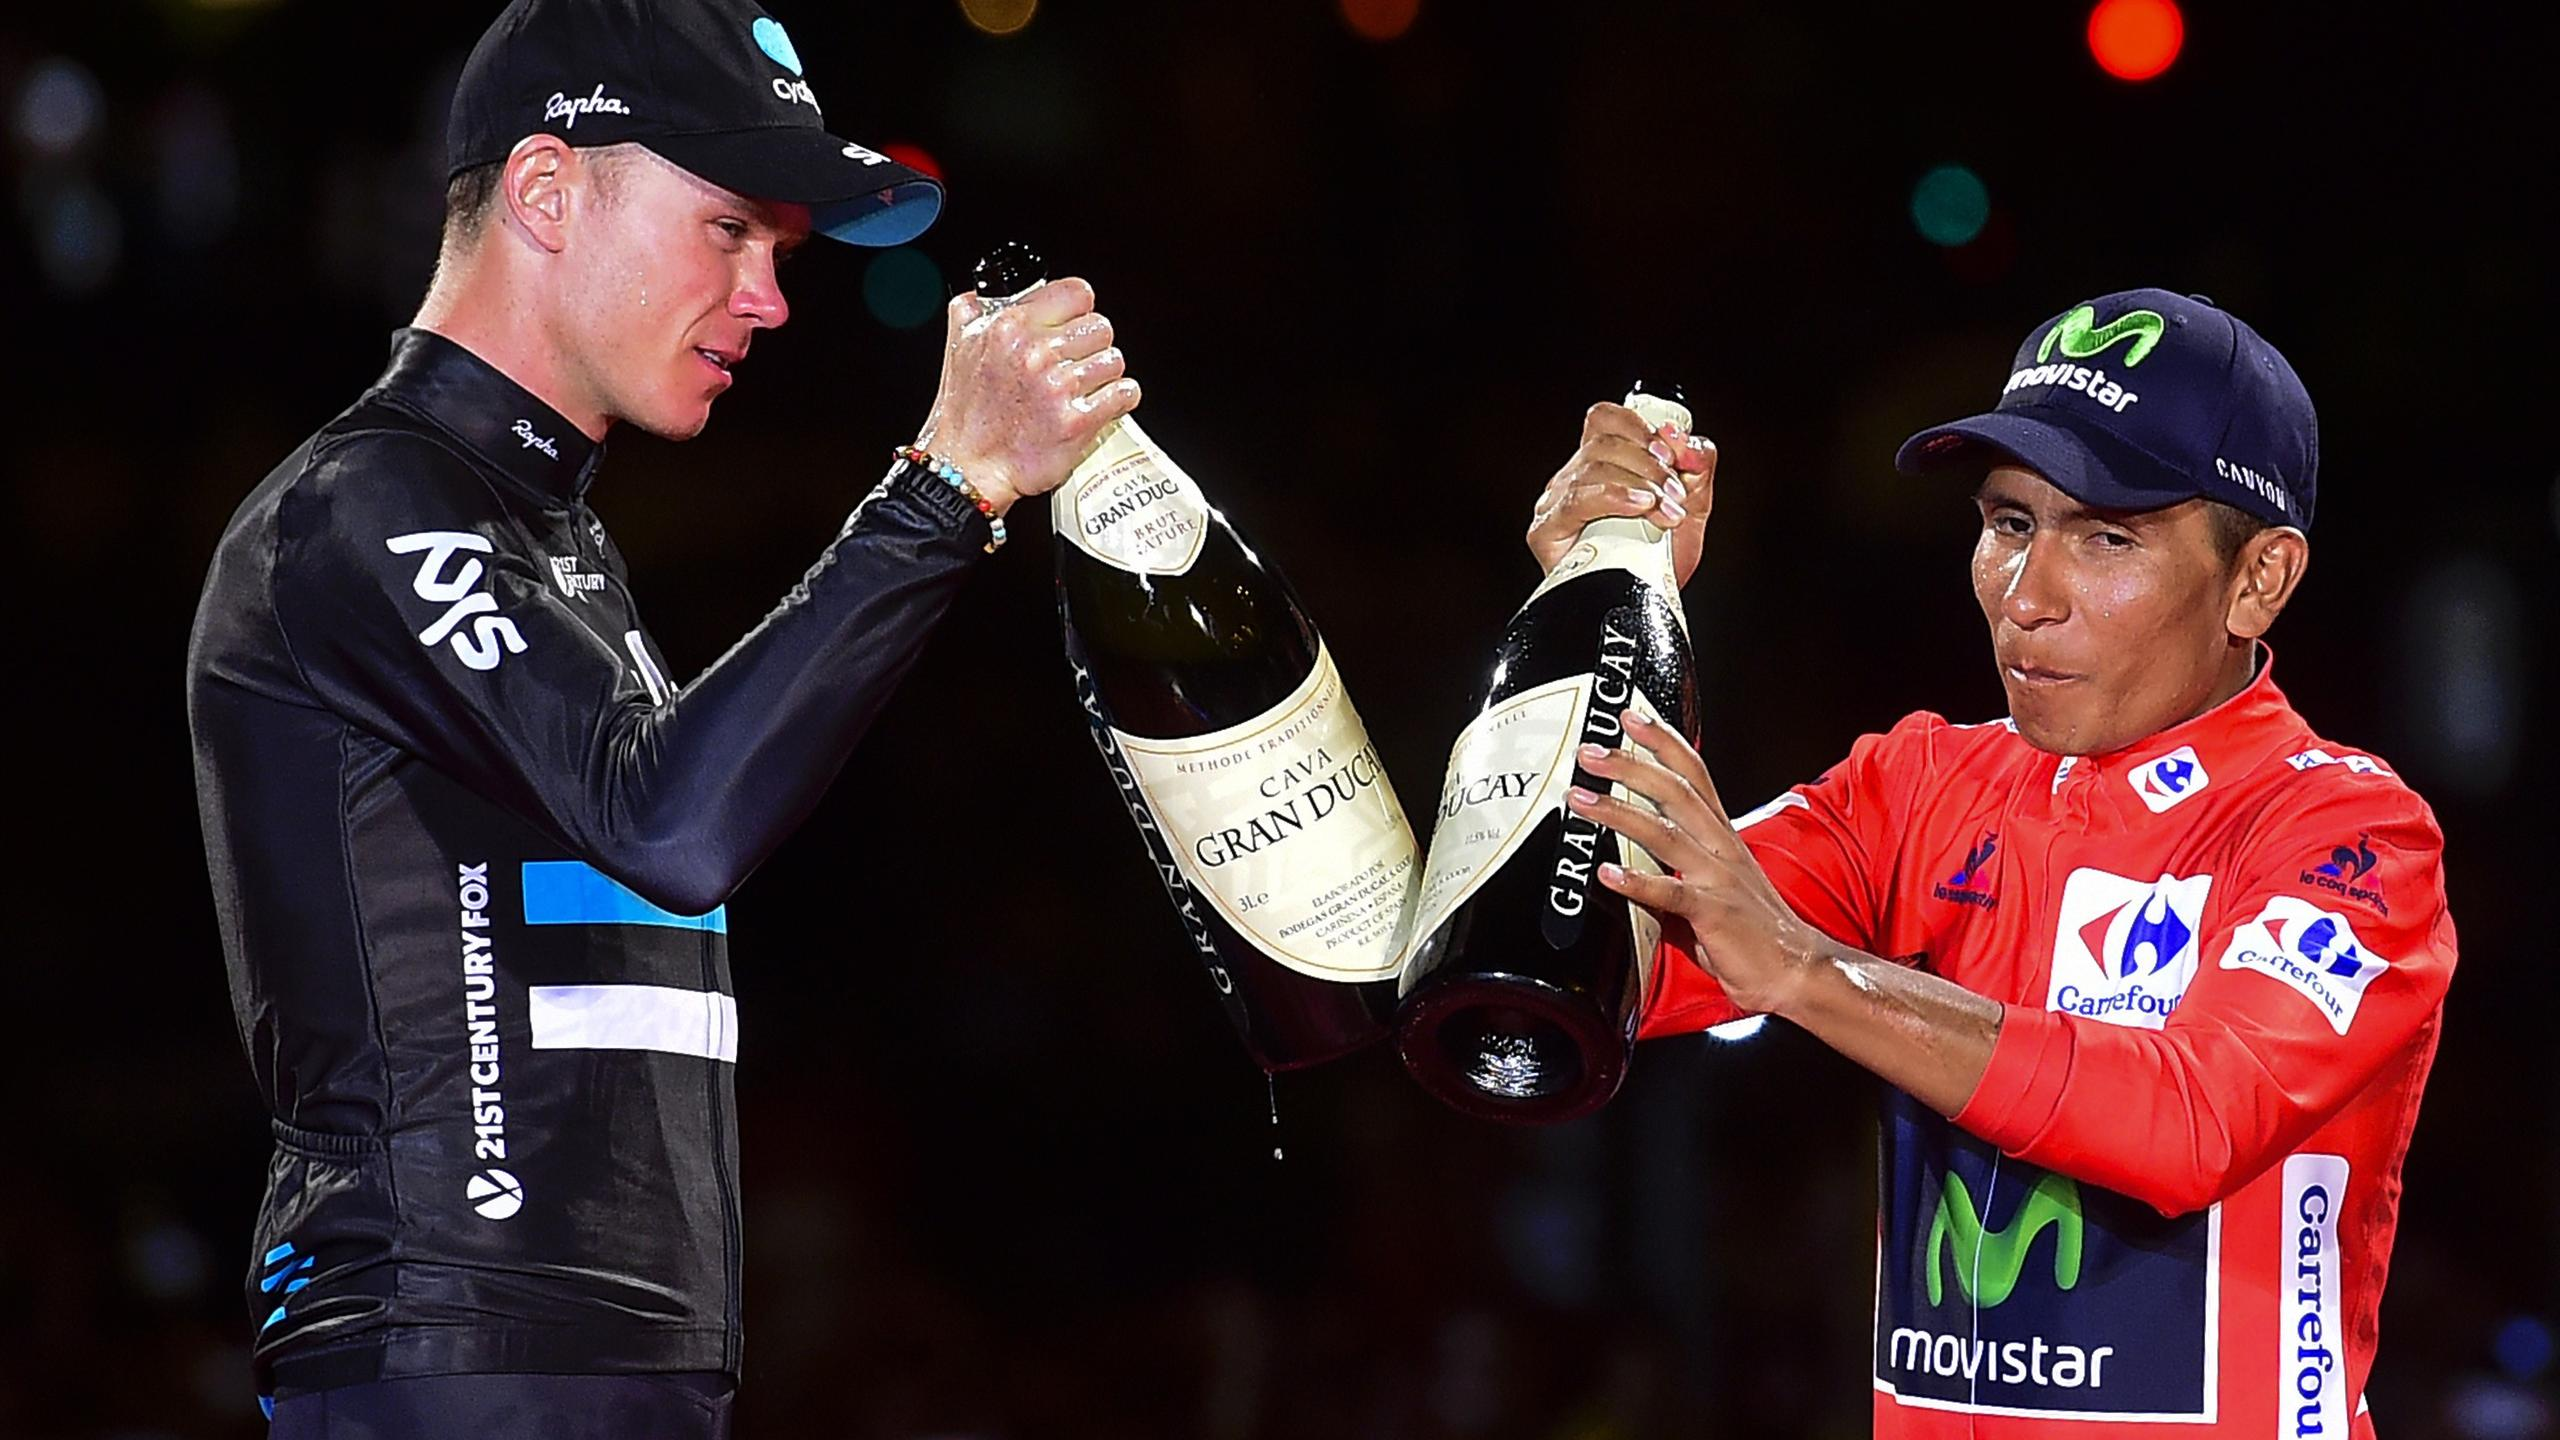 Nairo Quintana and Chris Froome atop the podium